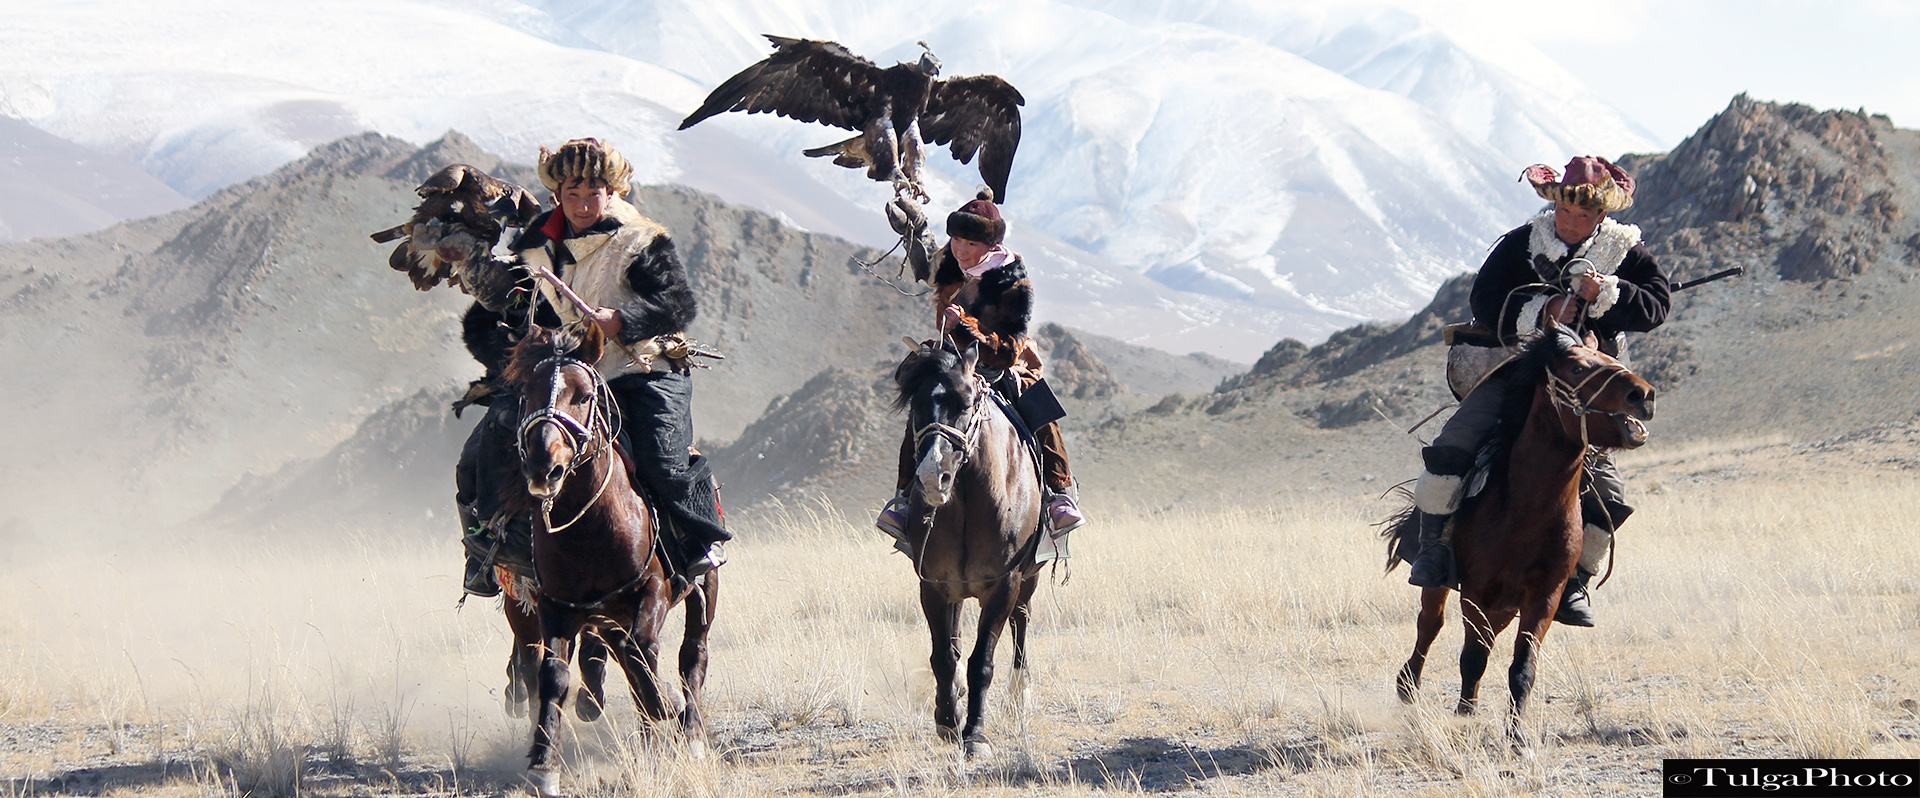 ALTAY GOLDEN EAGLE FESTIVAL 2019